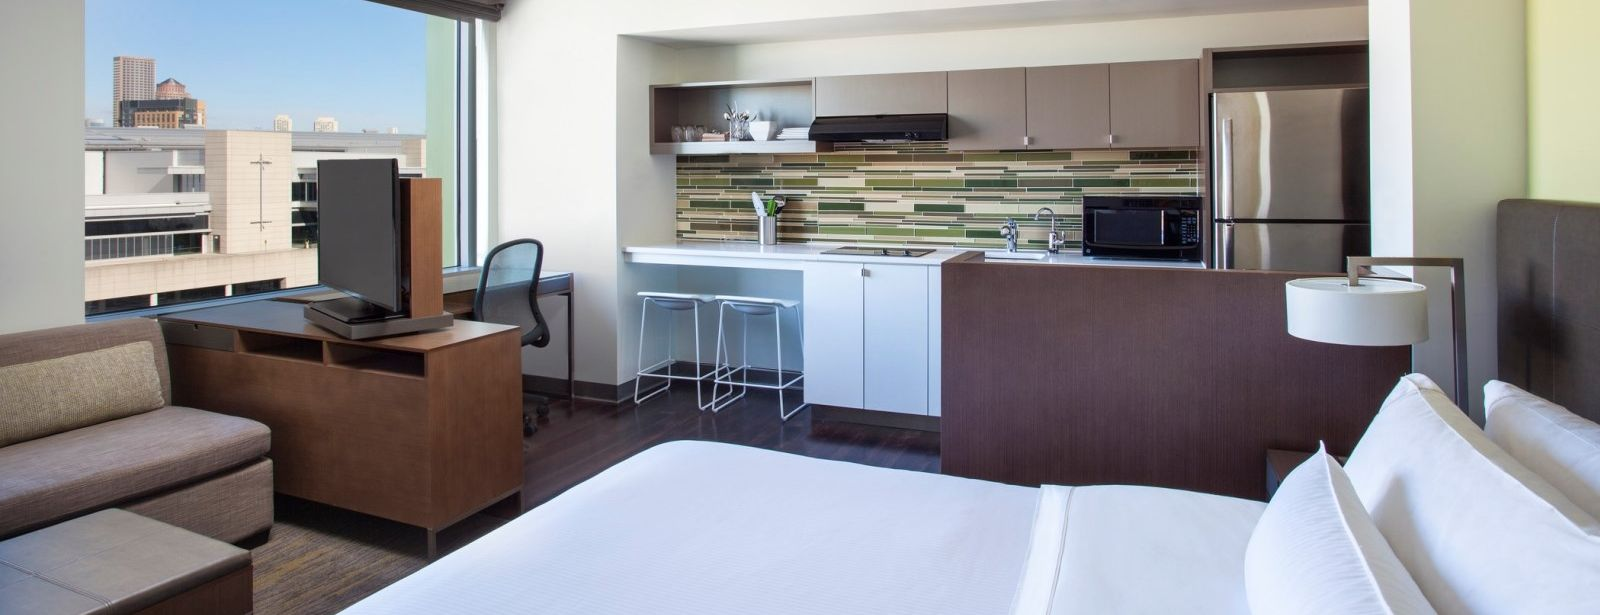 Seaport Accommodations - Accessible Room